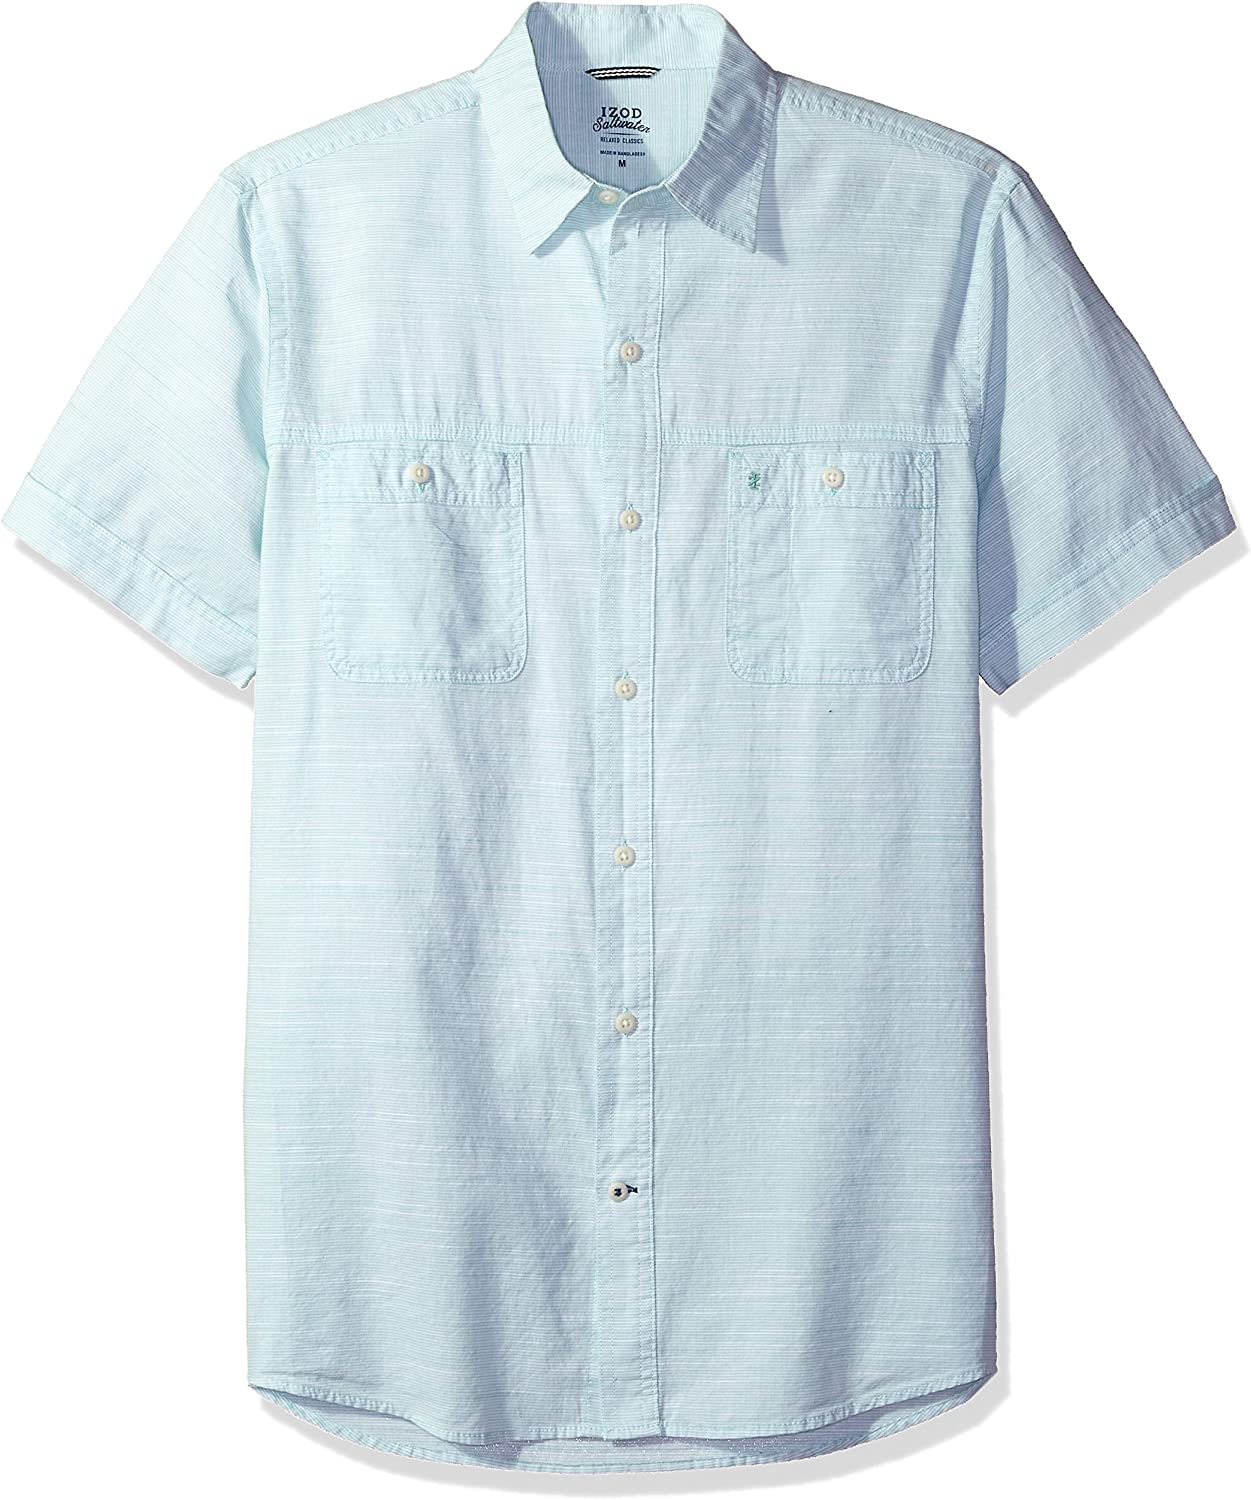 IZOD Mens Saltwater Dockside Chambray Short Sleeve Button Down Solid Shirt